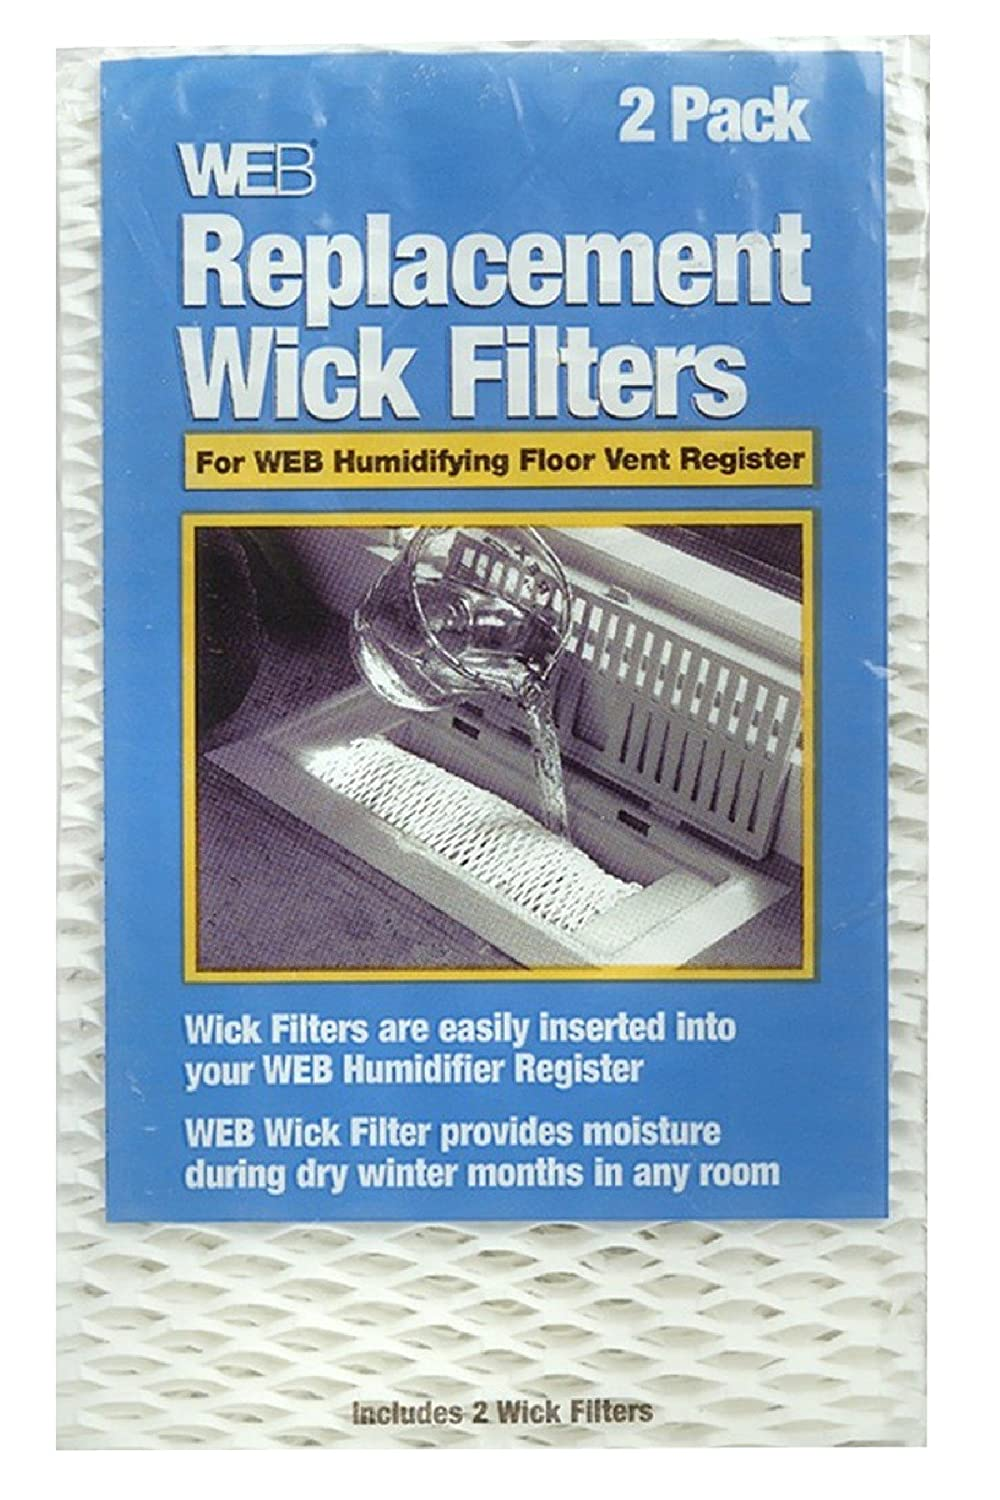 Amazon.com: WEB Humidifier Register Replacement Wick Filters, 2 Pack: Home  Improvement